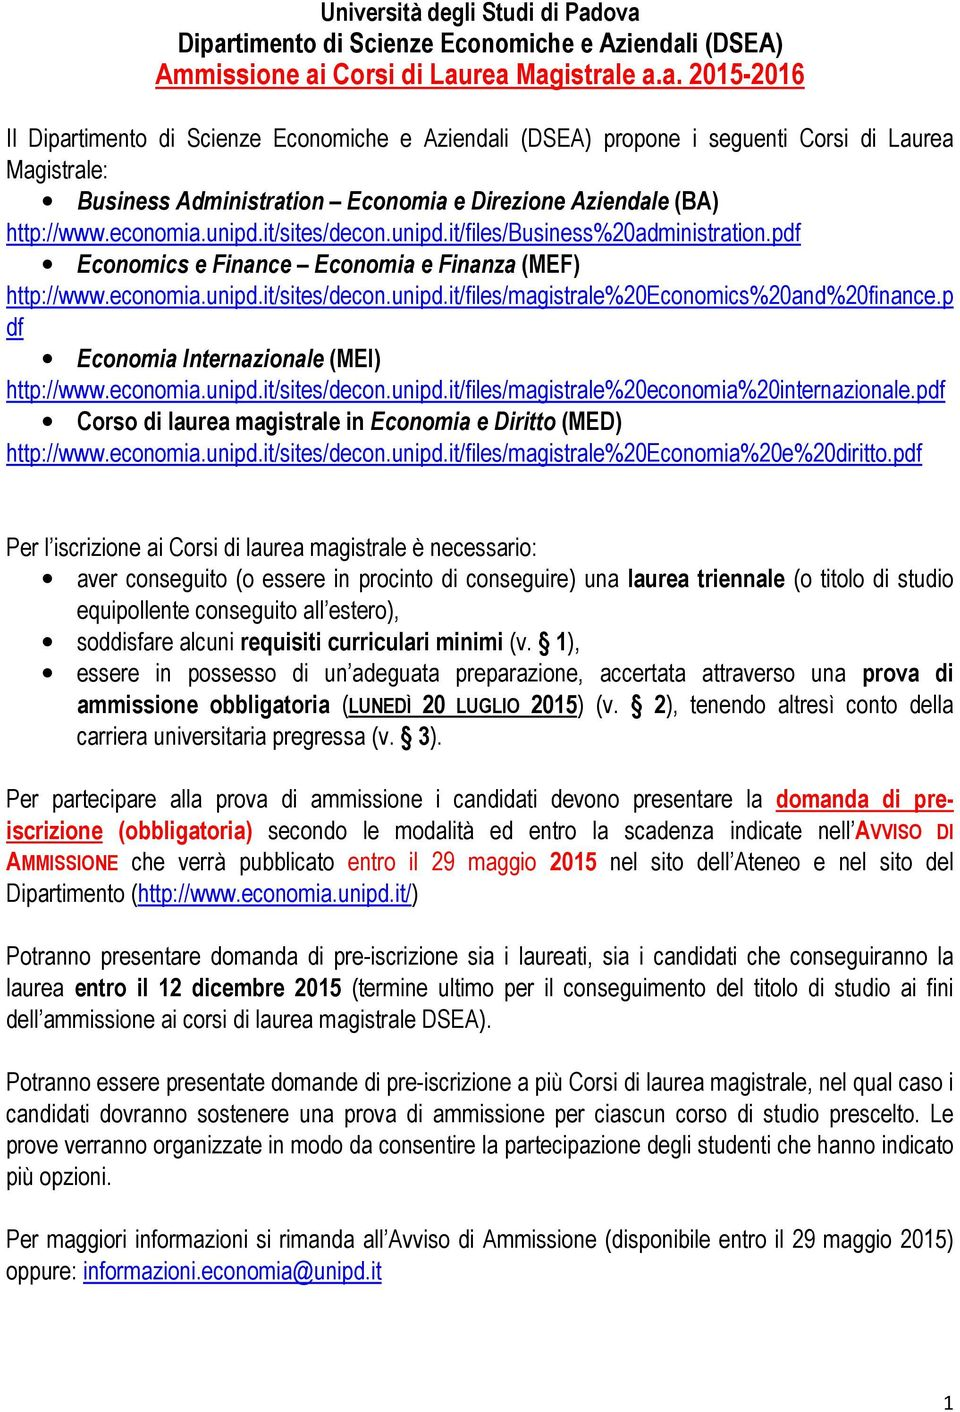 economia.unipd.it/sites/decon.unipd.it/files/business%20administration.pdf Economics e Finance Economia e Finanza (MEF) http://www.economia.unipd.it/sites/decon.unipd.it/files/magistrale%20economics%20and%20finance.